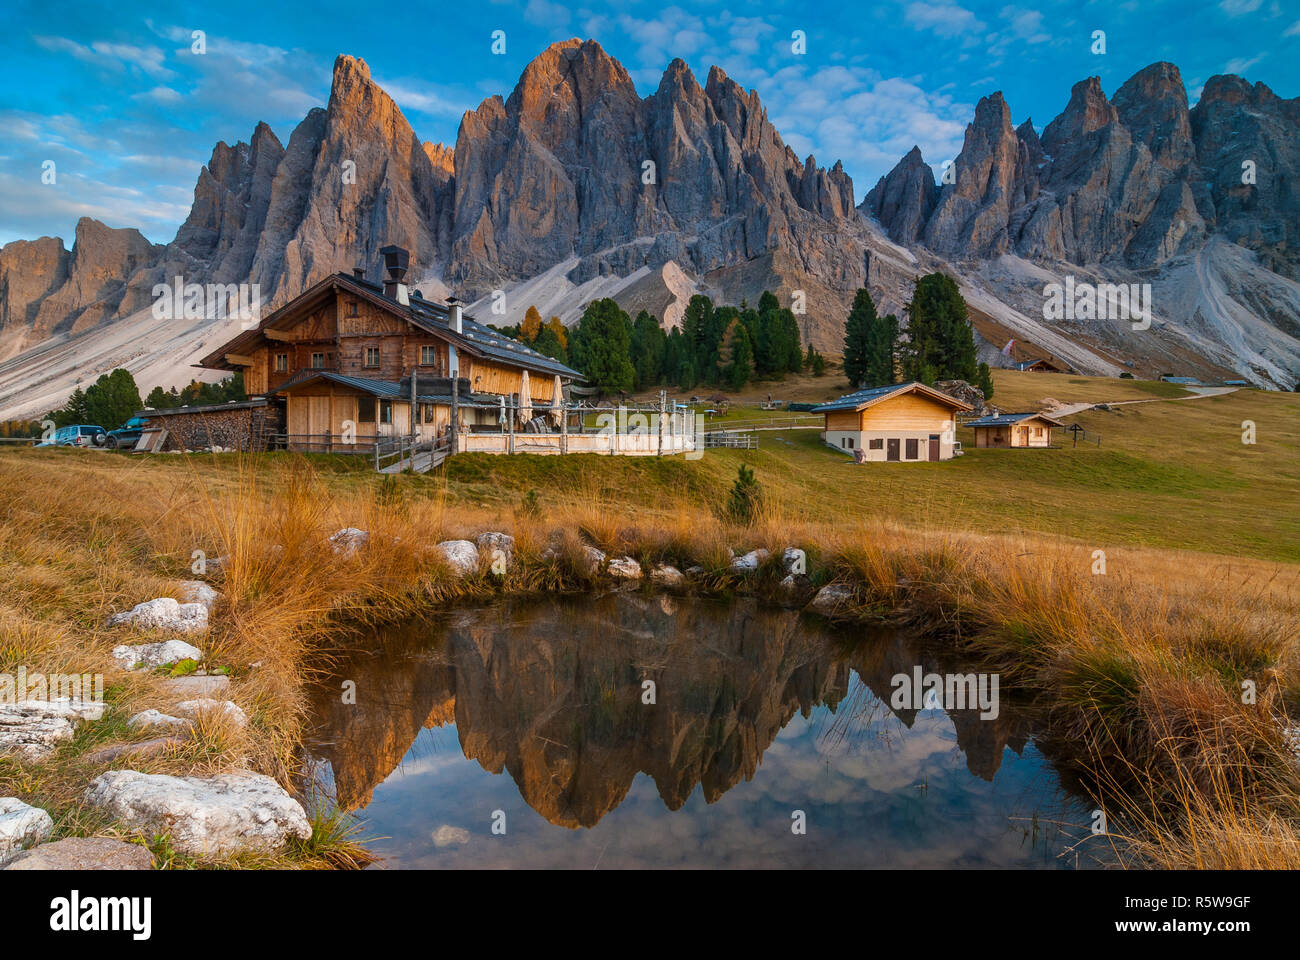 Mountain huts at the foot of the Odle group, Dolomites, Italy - Stock Image